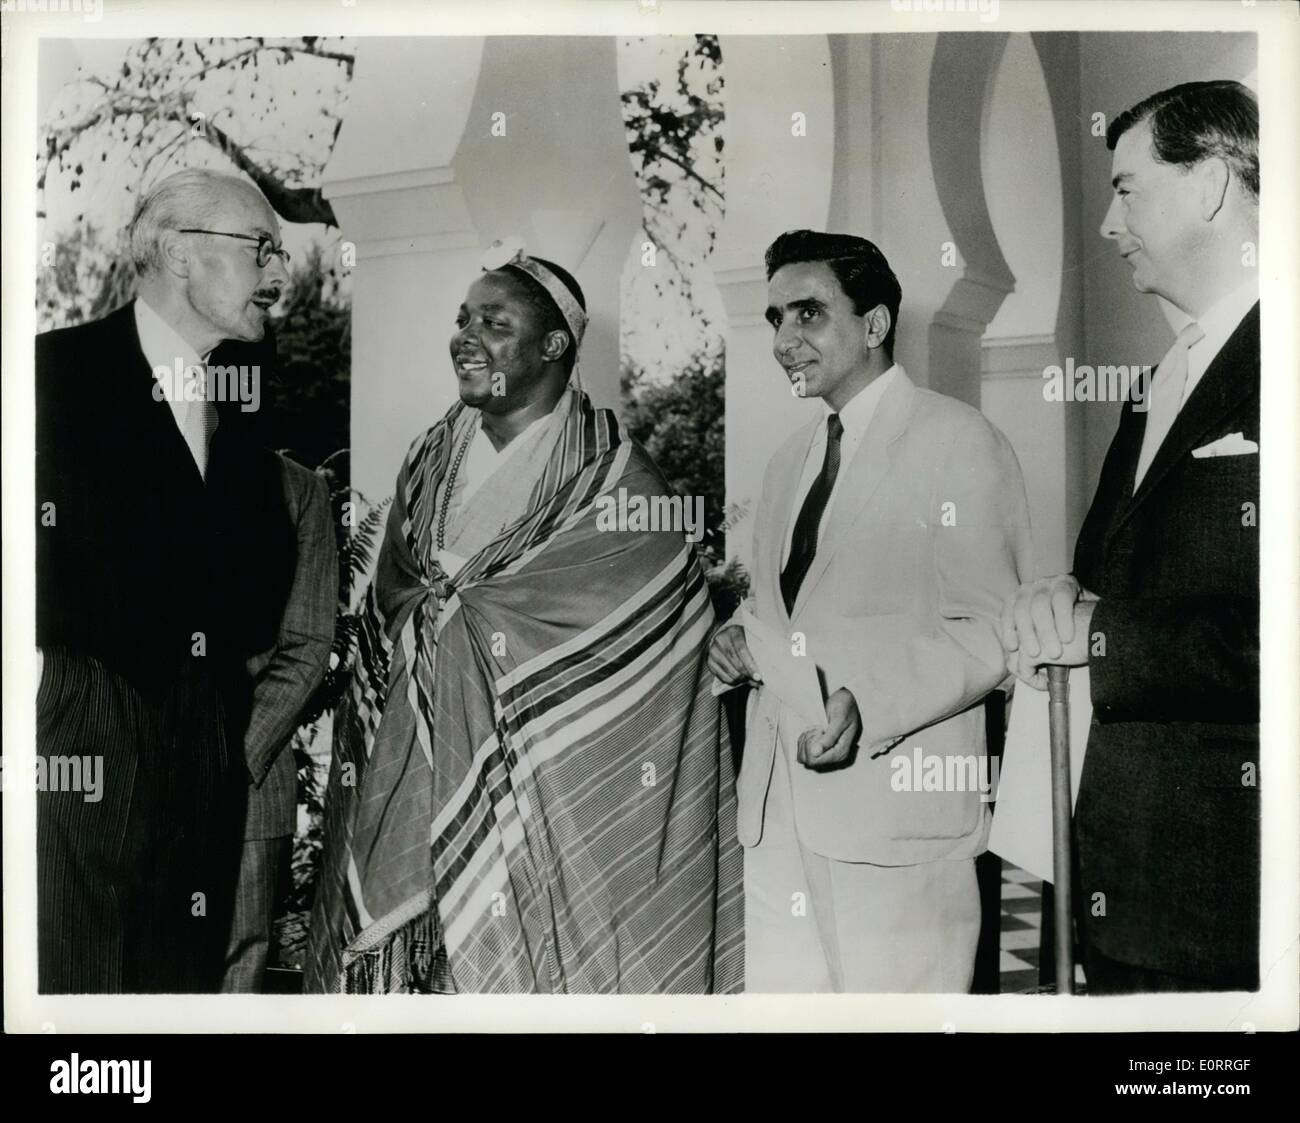 May 05, 1960 - Inter-racial Government: Five elected members, three African, one Asian and one European, were among 12 new Ministers sworn into the Council of Ministers of Tanganyika. The ceremony at Government House, Dar es Salaam, marked a significant step forward in the African territory's progress towards self-Government with British co-operation. The Governor, Sir Richard Turnbull, said it was the end of wholly official Government and the beginning of Government in which elected members share in the formation of Government policies - Stock Image